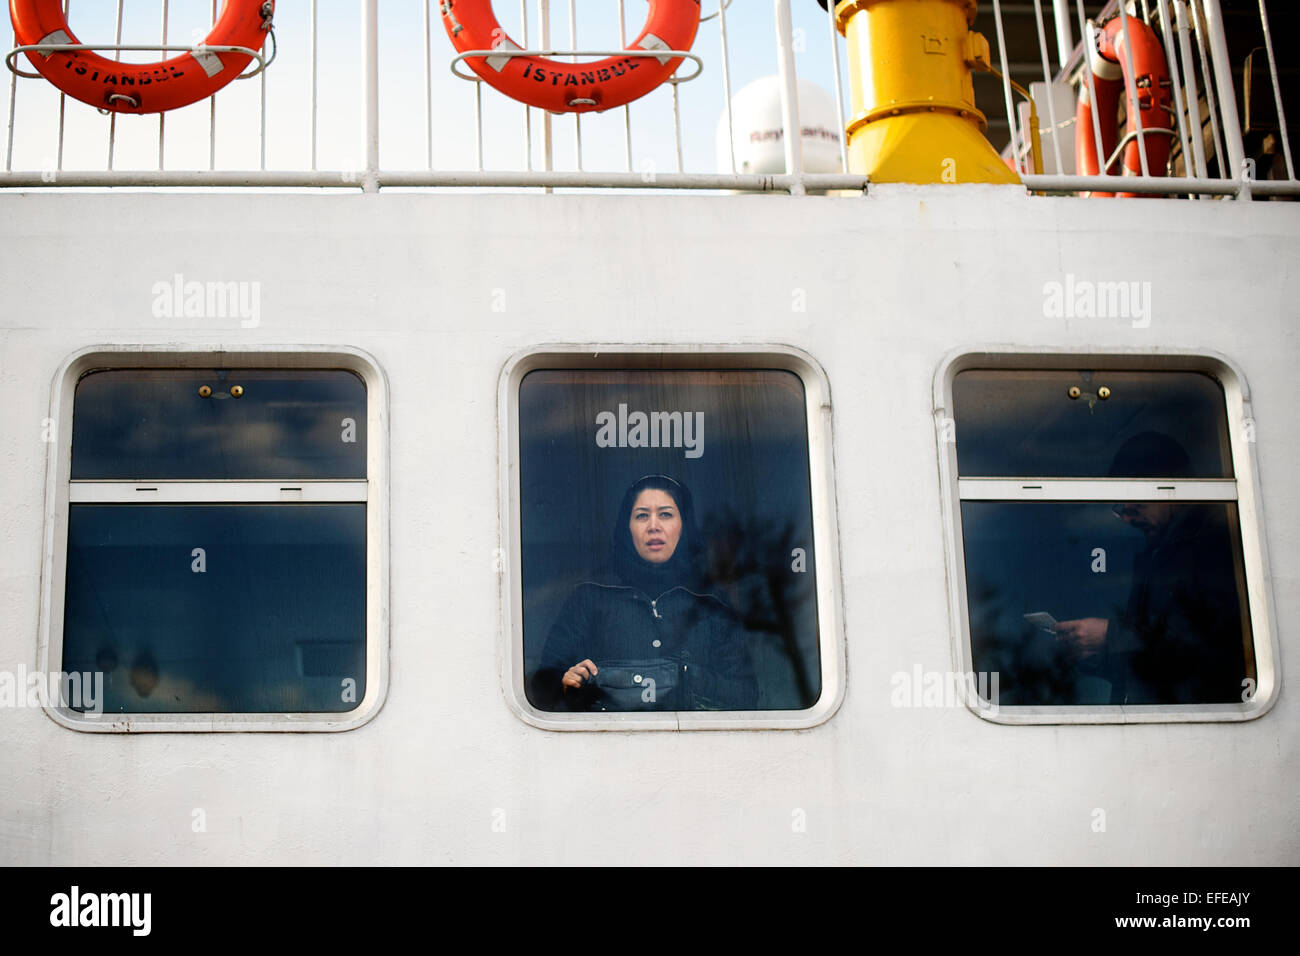 A woman peers out at the view on a bosphorous ferry is pictured as part of a photo essay on winter breaks in Istanbul, Stock Photo